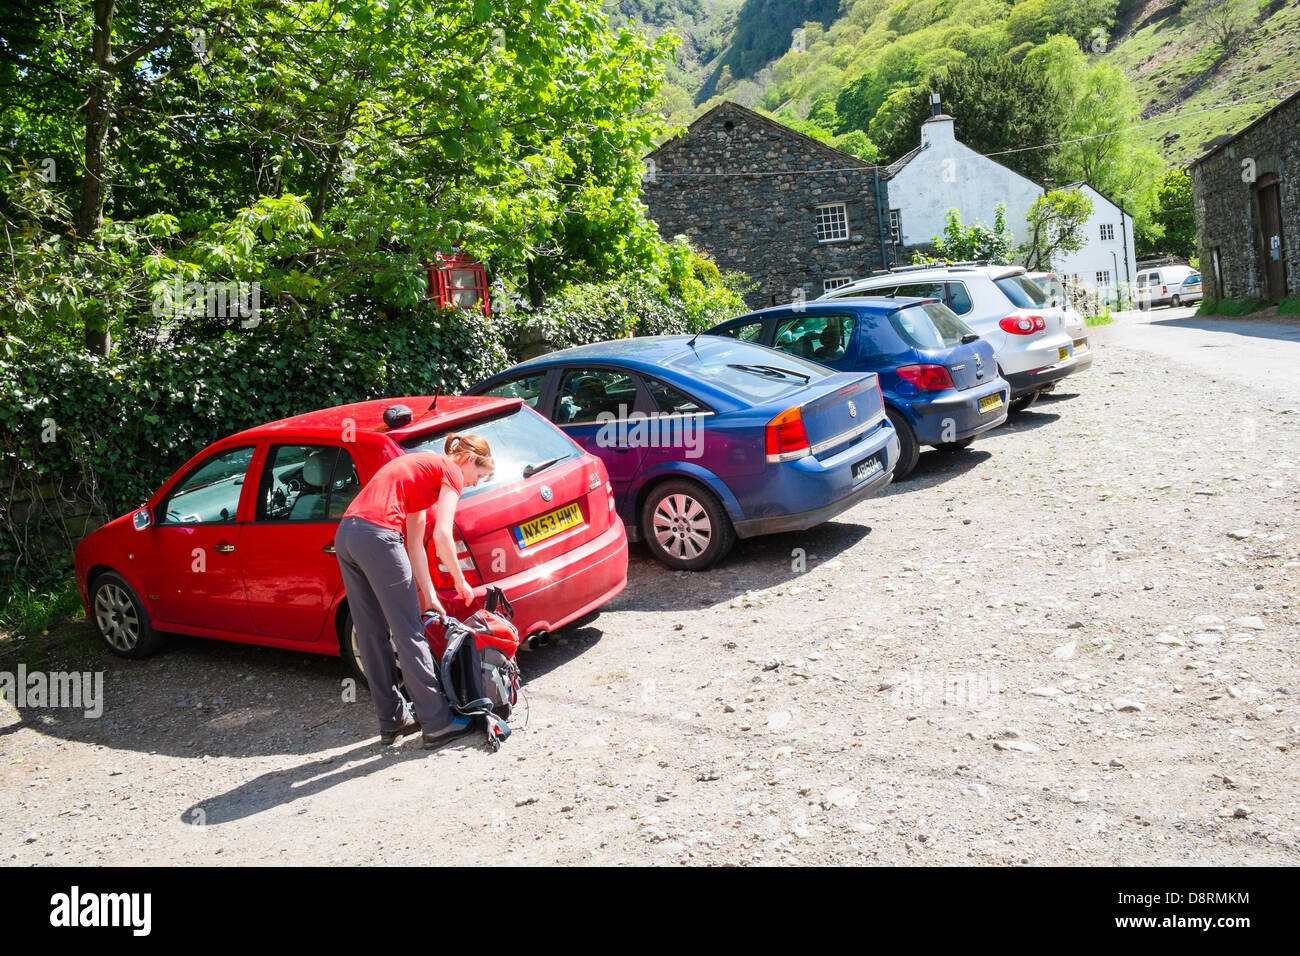 A female hiker returning to a parked car at Stonethwaite in the Lake District - Stock Image